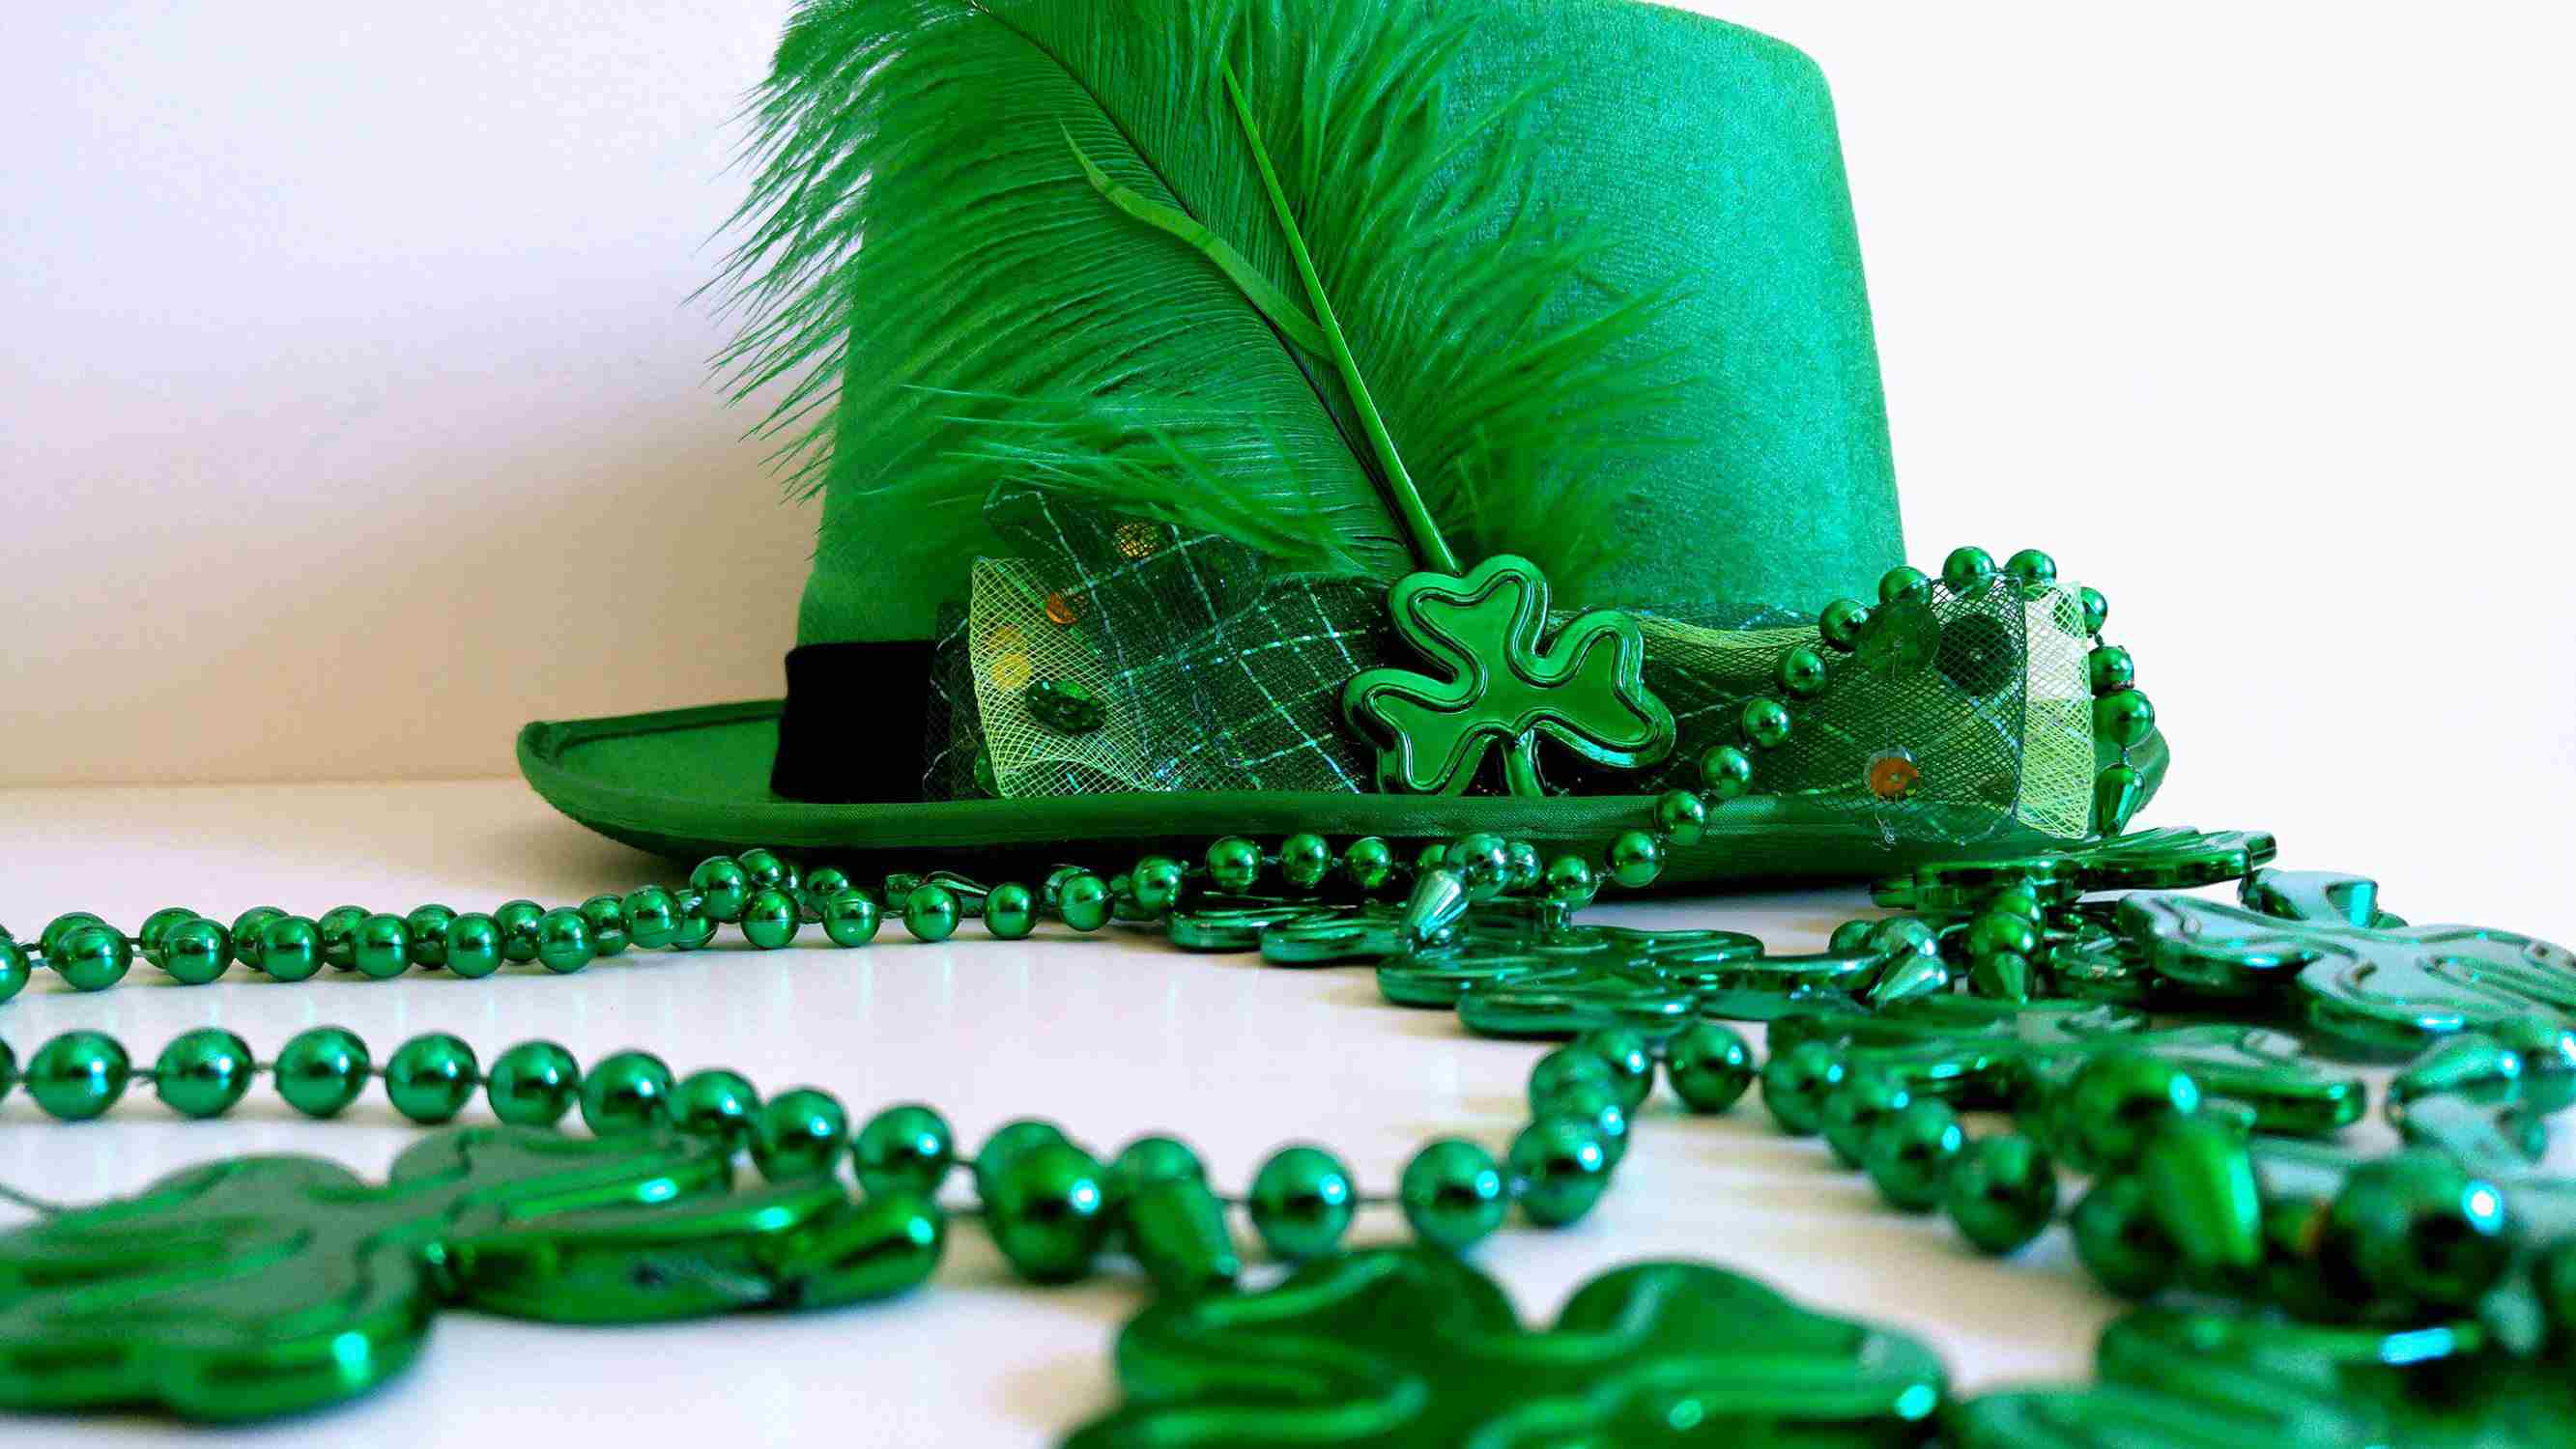 A picture of a St. Patrick's Day hat and beads